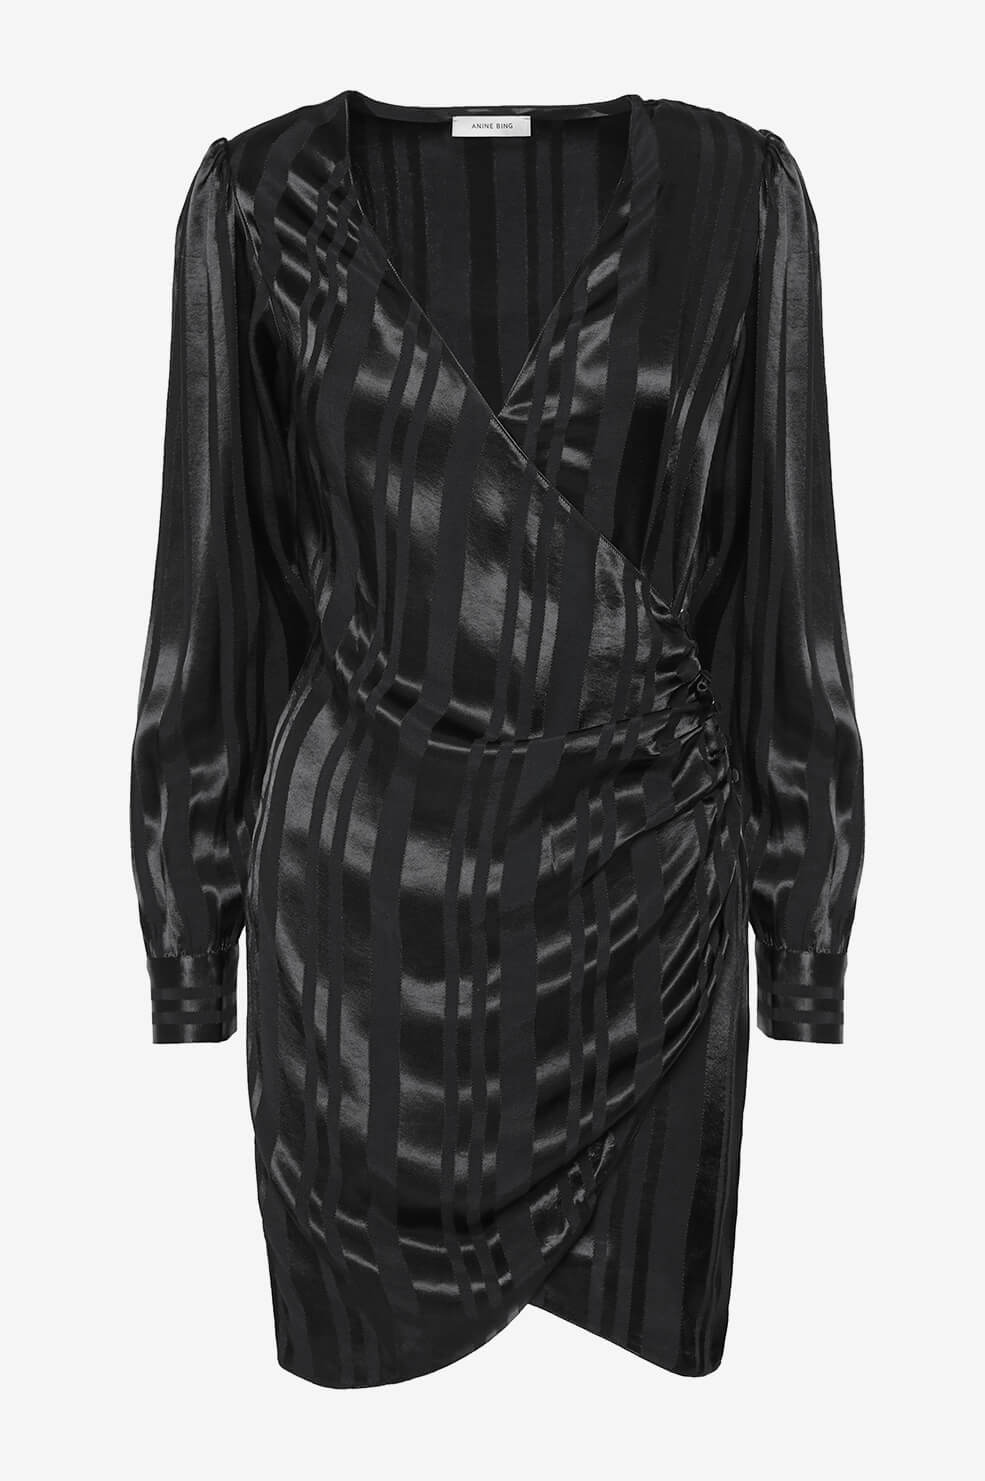 ANINE BING Penelope Dress - Black Tonal Stripe